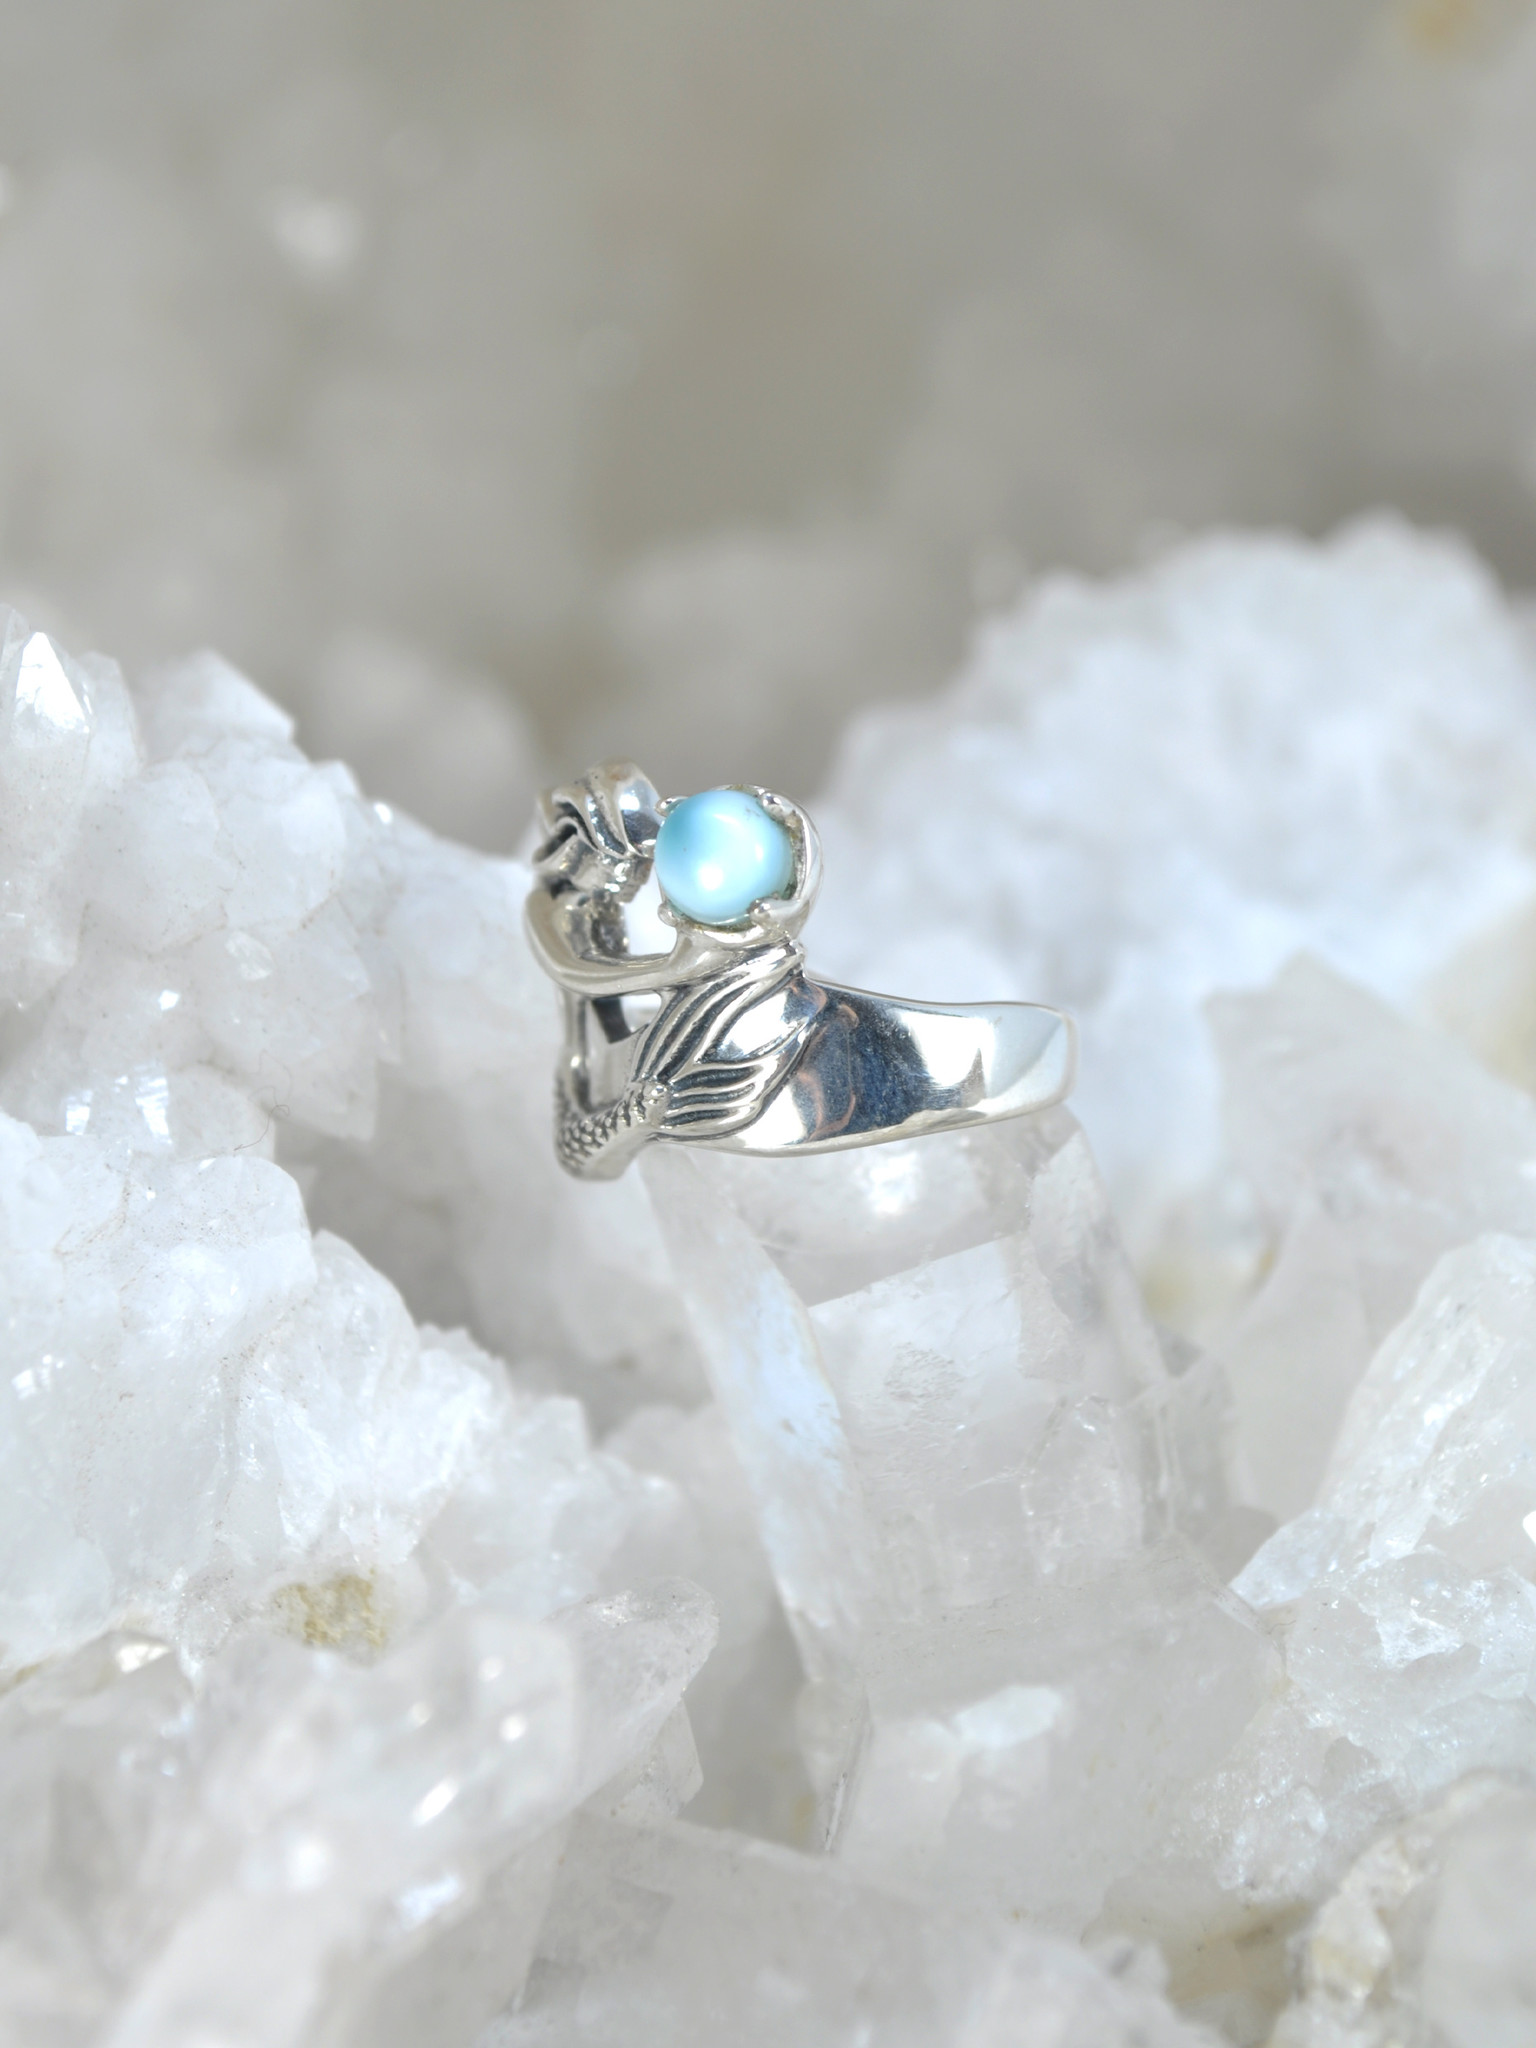 Mermaid With Larimar and Pearl Ring  925 Sterling Silver  Larimar Mermaid Ring  Sea Life Jewelry  Size 7